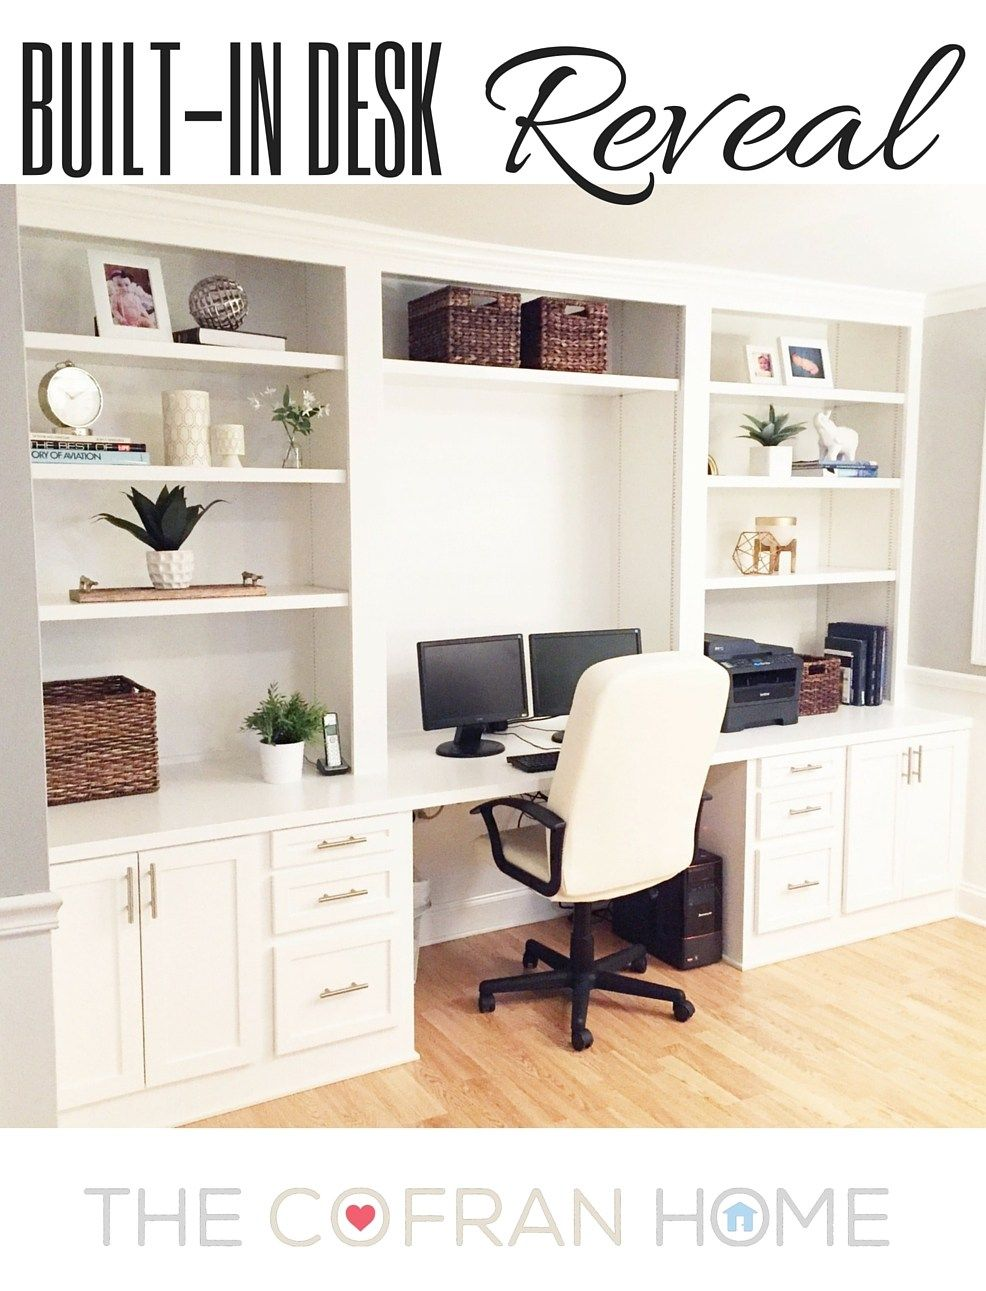 Built In Desk Reveal Home Office Decor Home Office Design Home Office Space